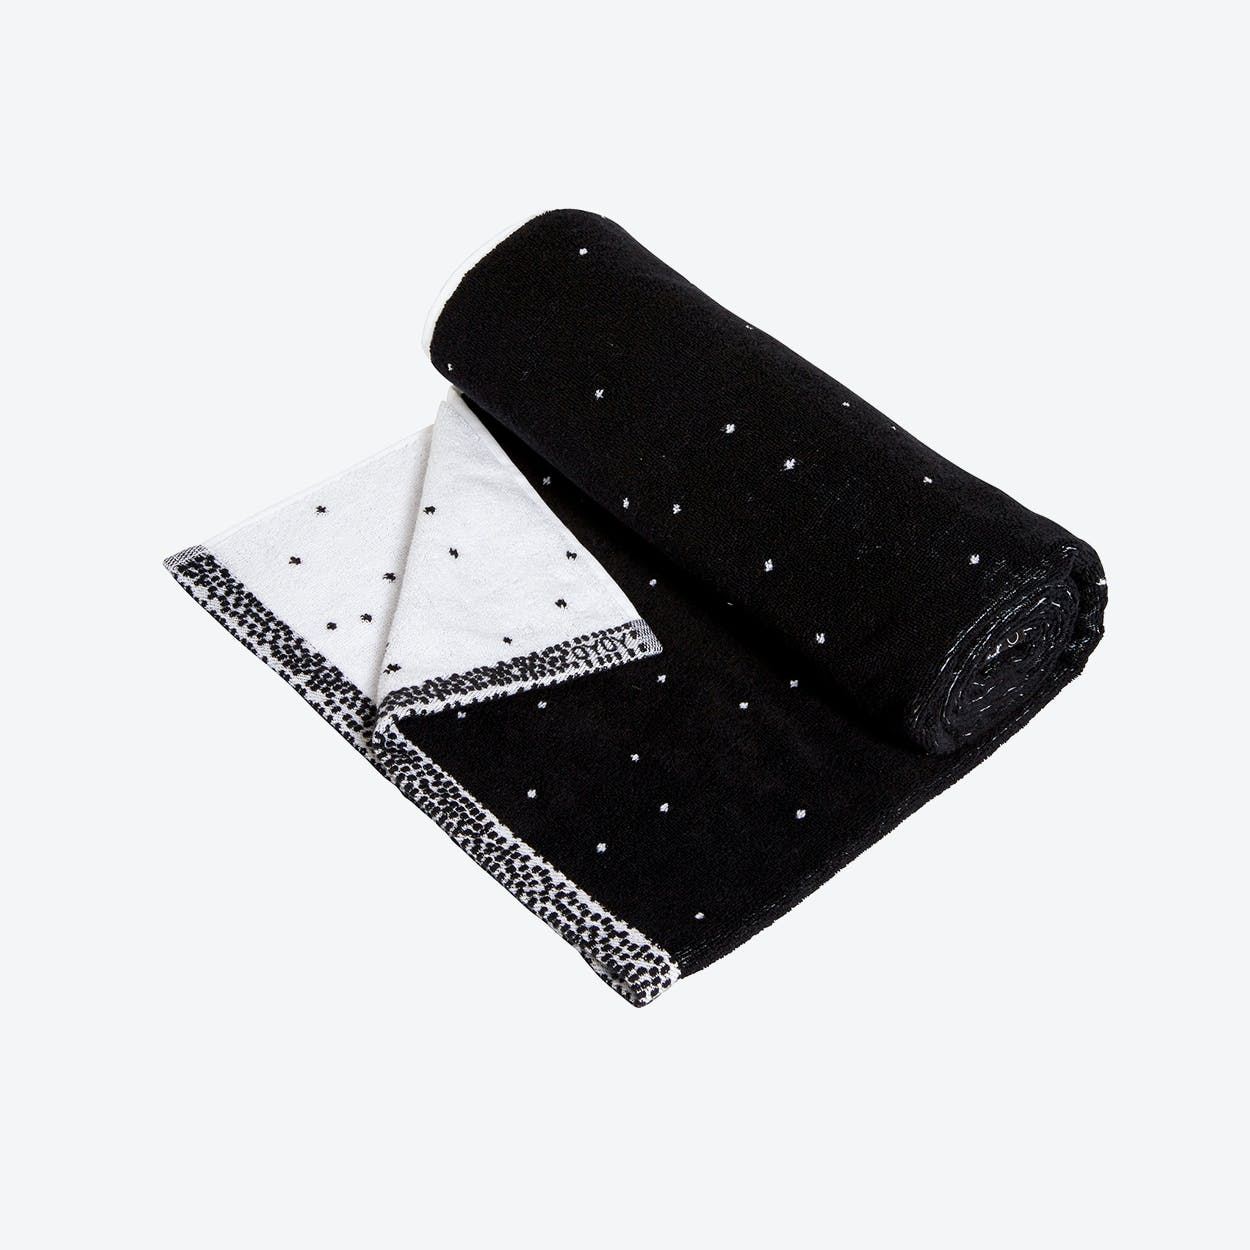 Dotty Towel - Small in Black / White